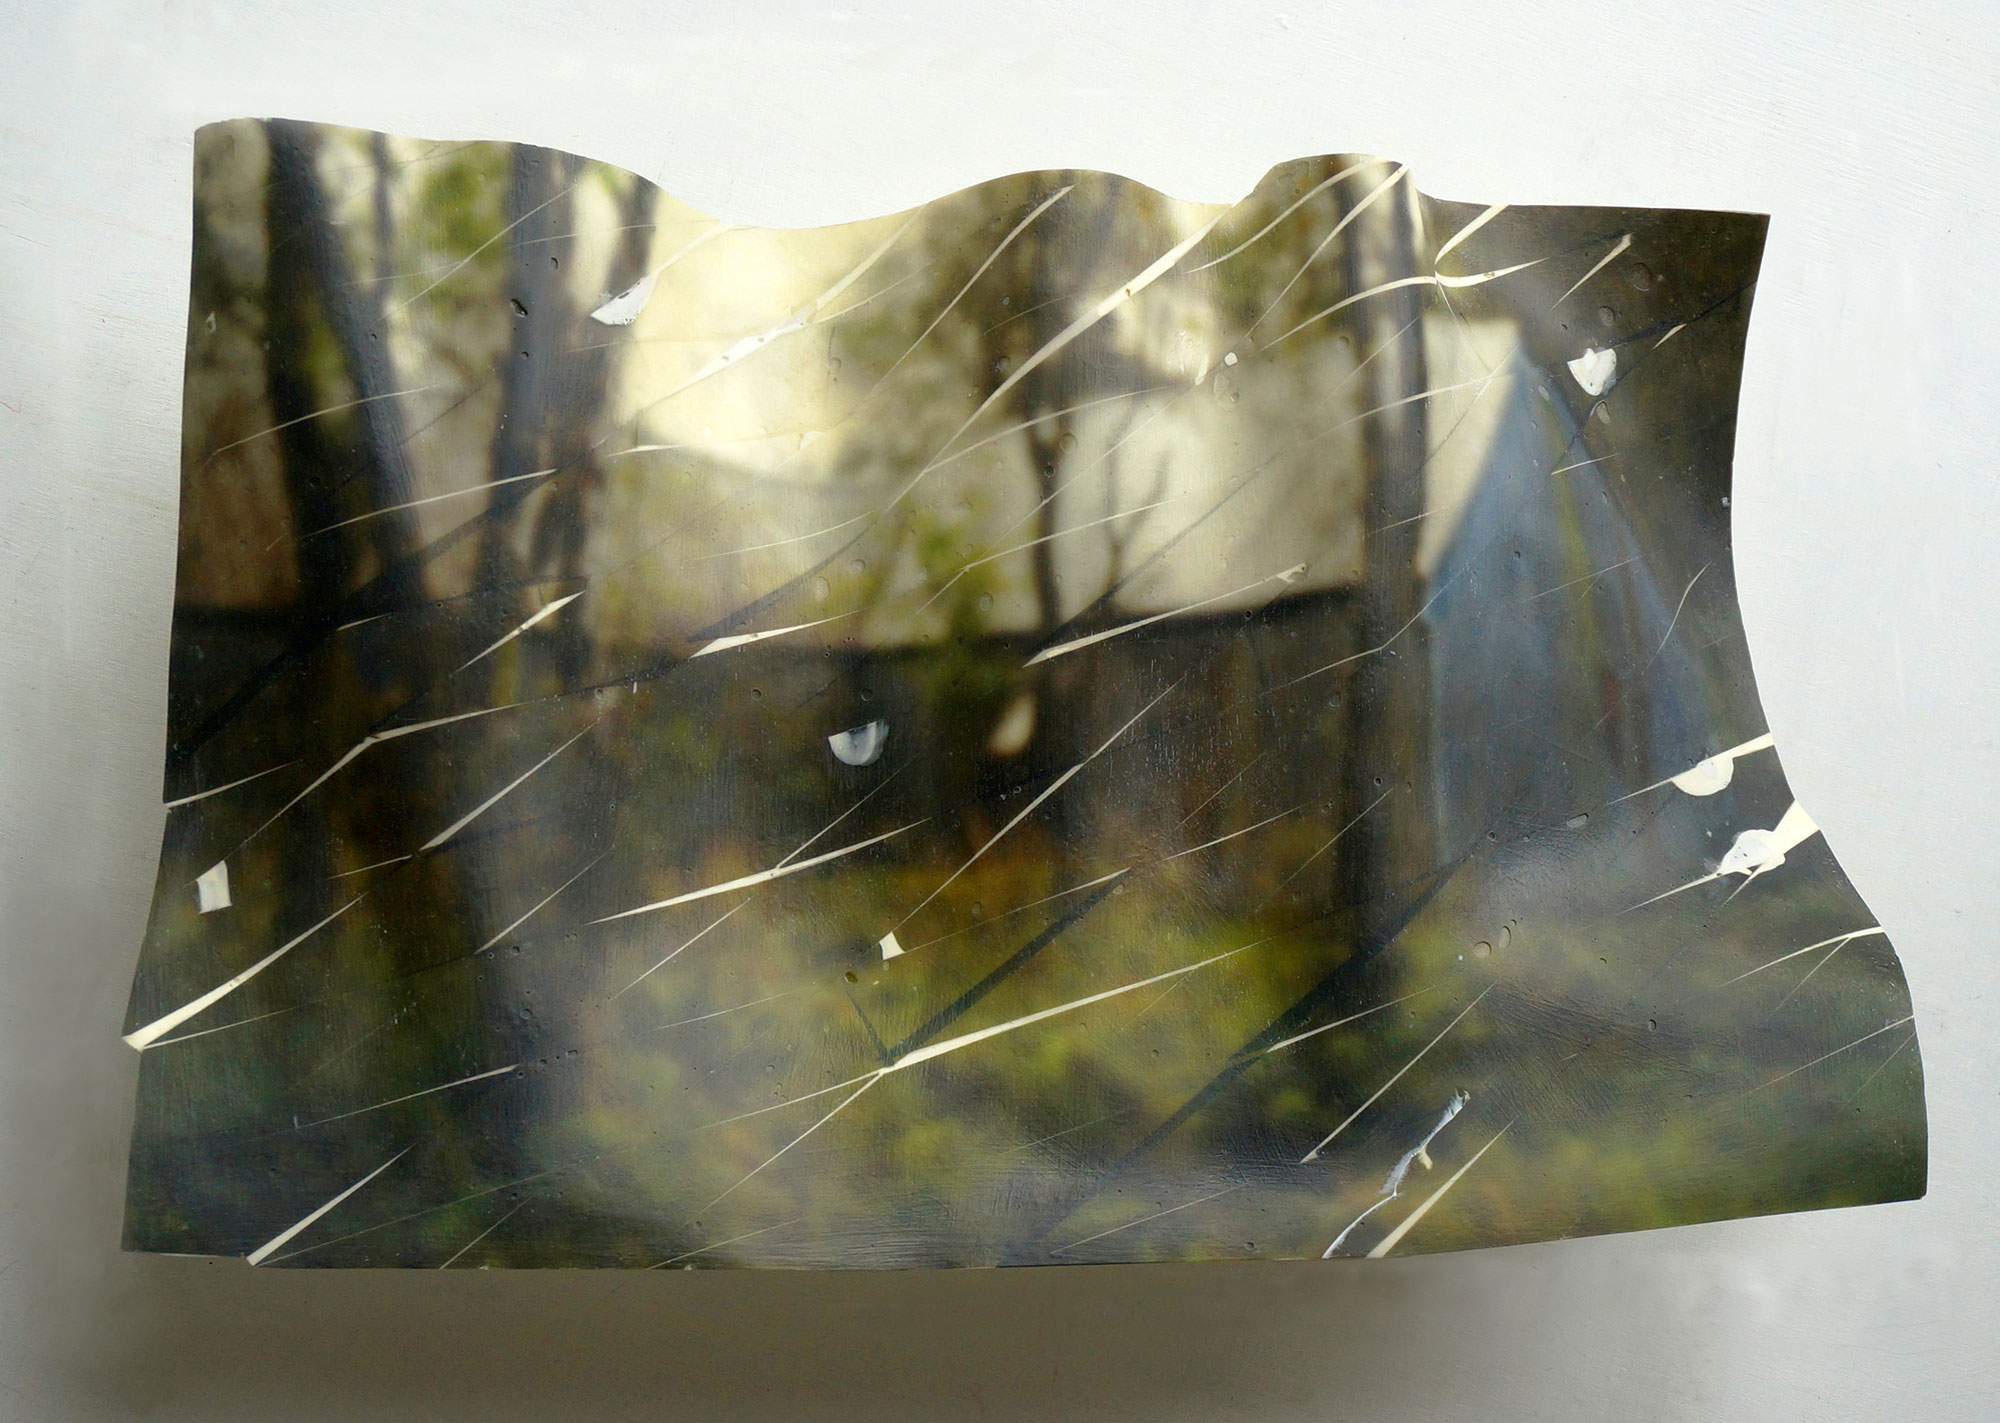 Building and Trees (Version 1), 2020, 49x30x11cms